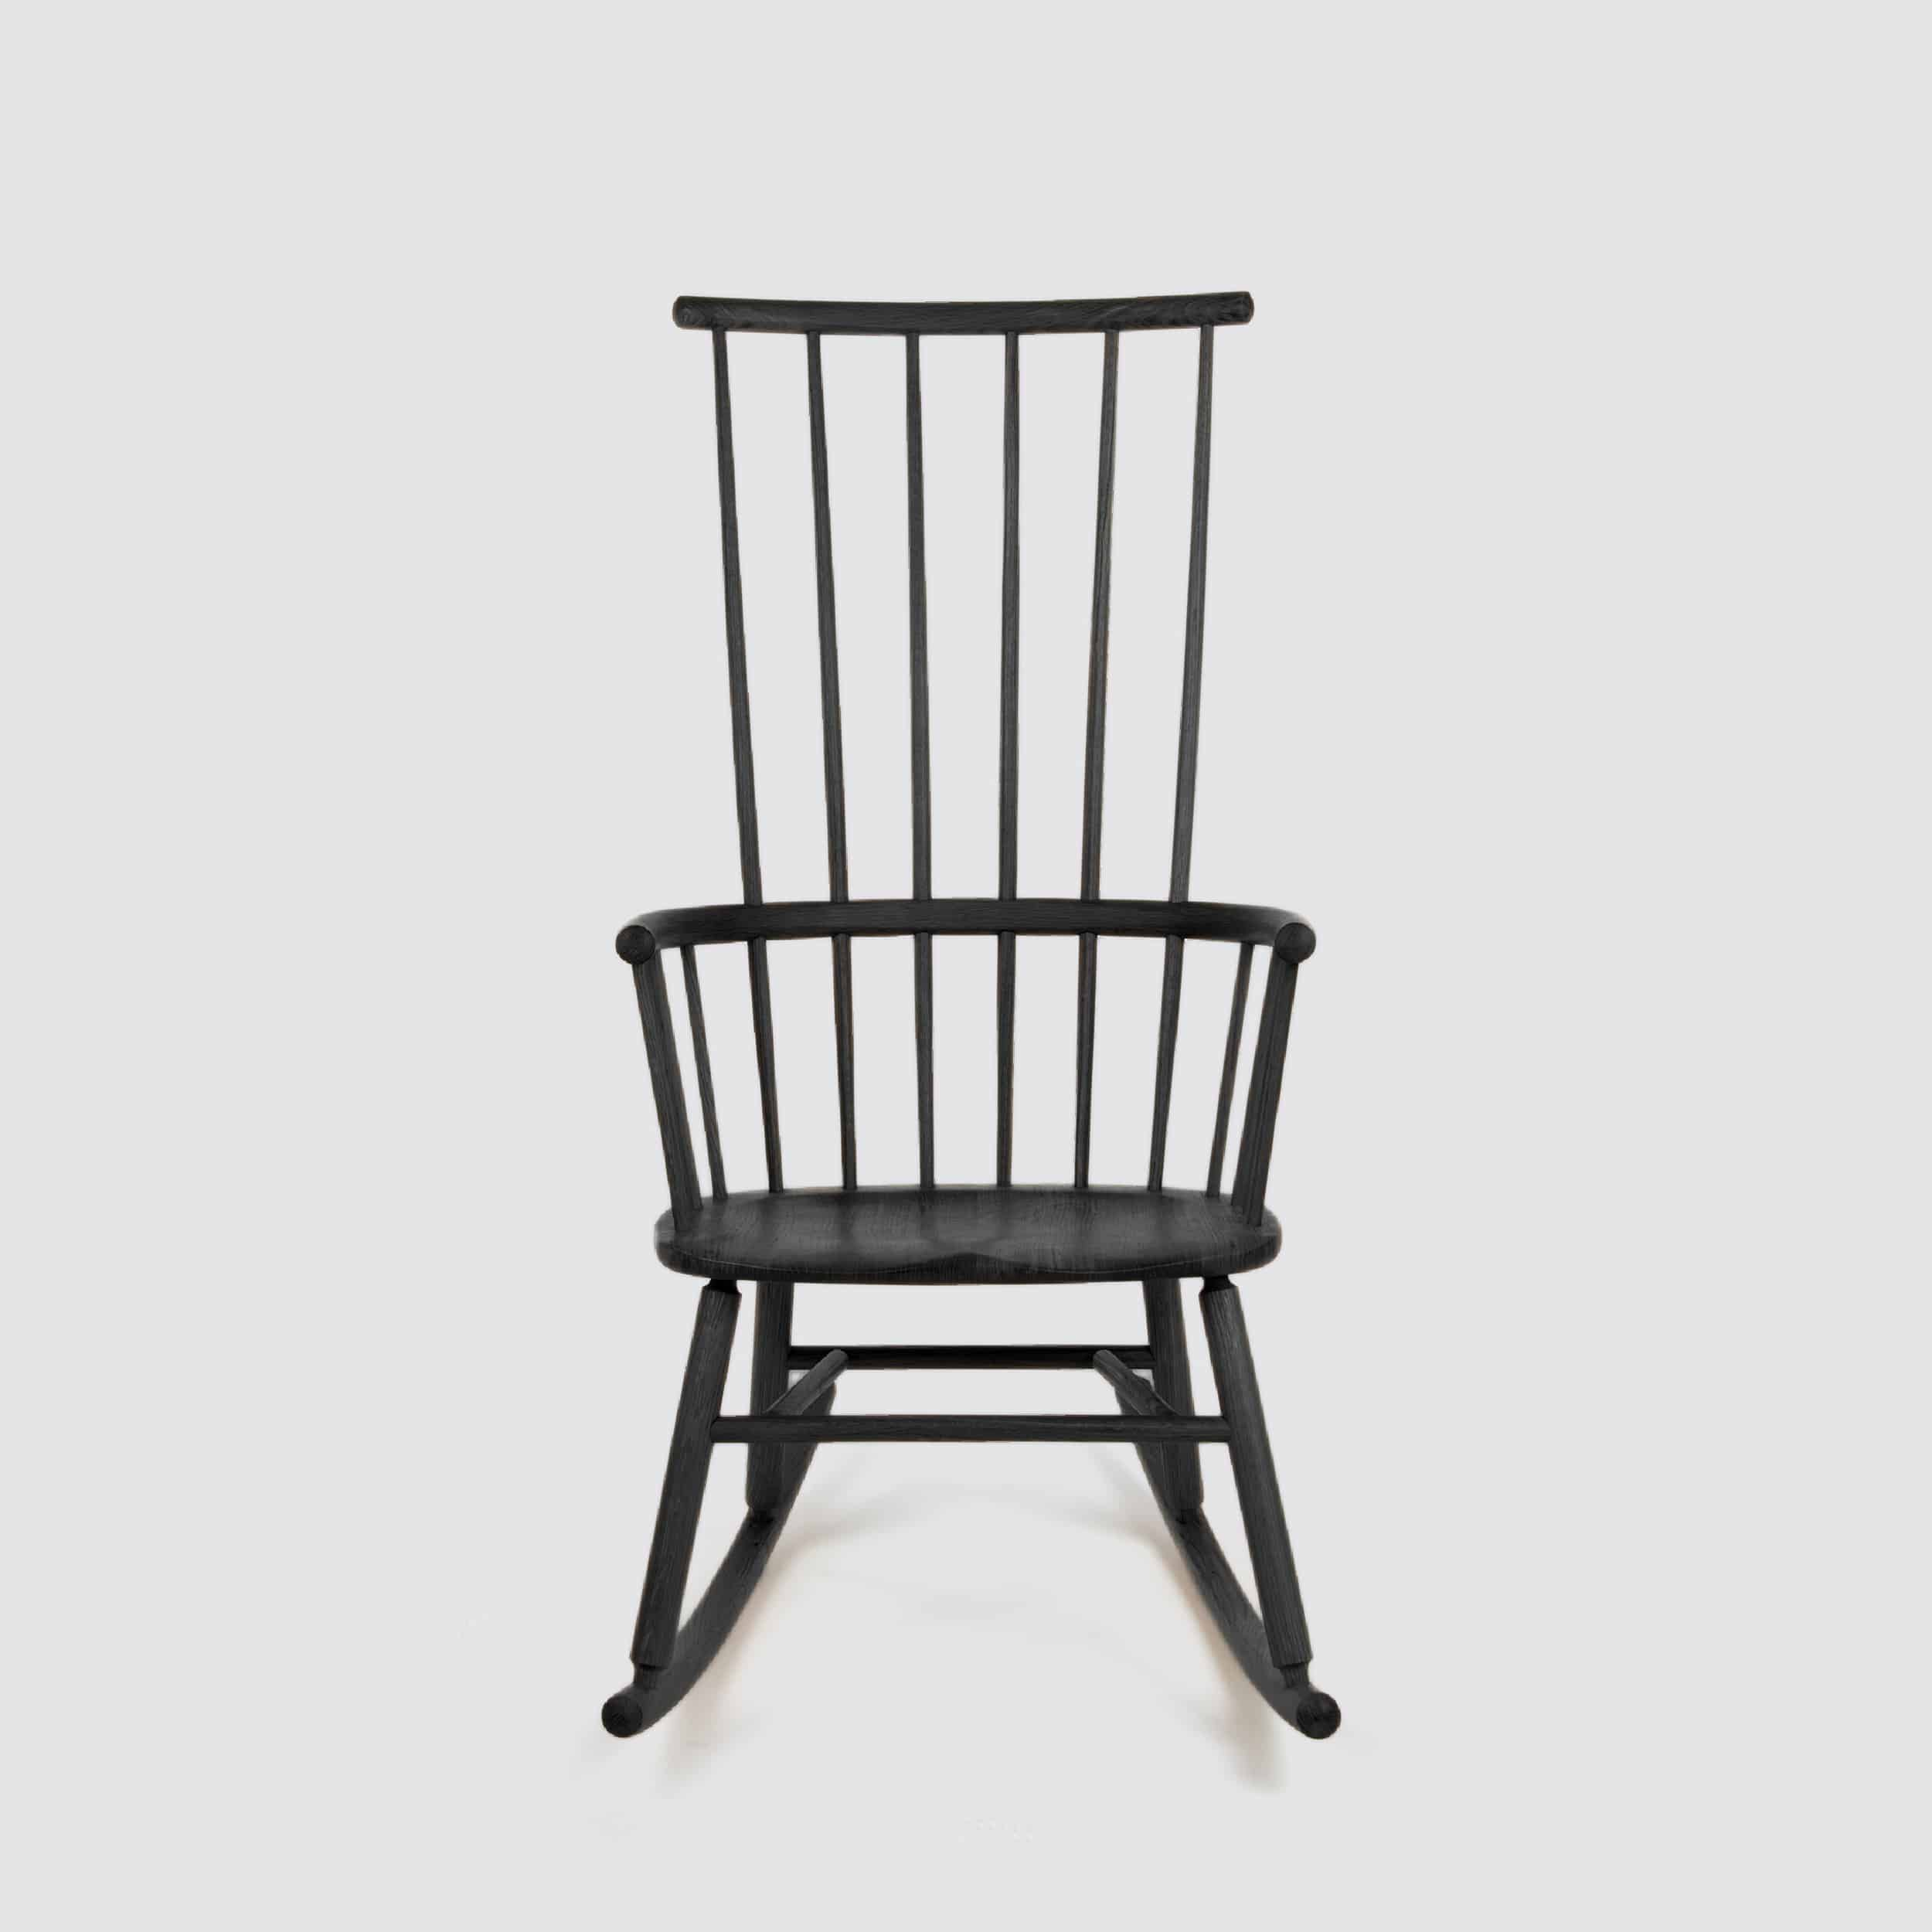 Black Hardy Rocking Chair by Another Country